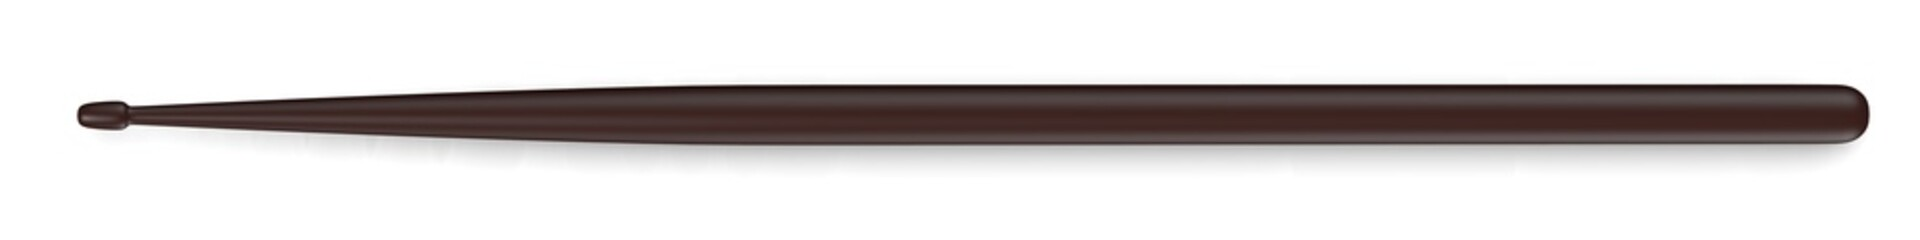 3d render of percussion stick